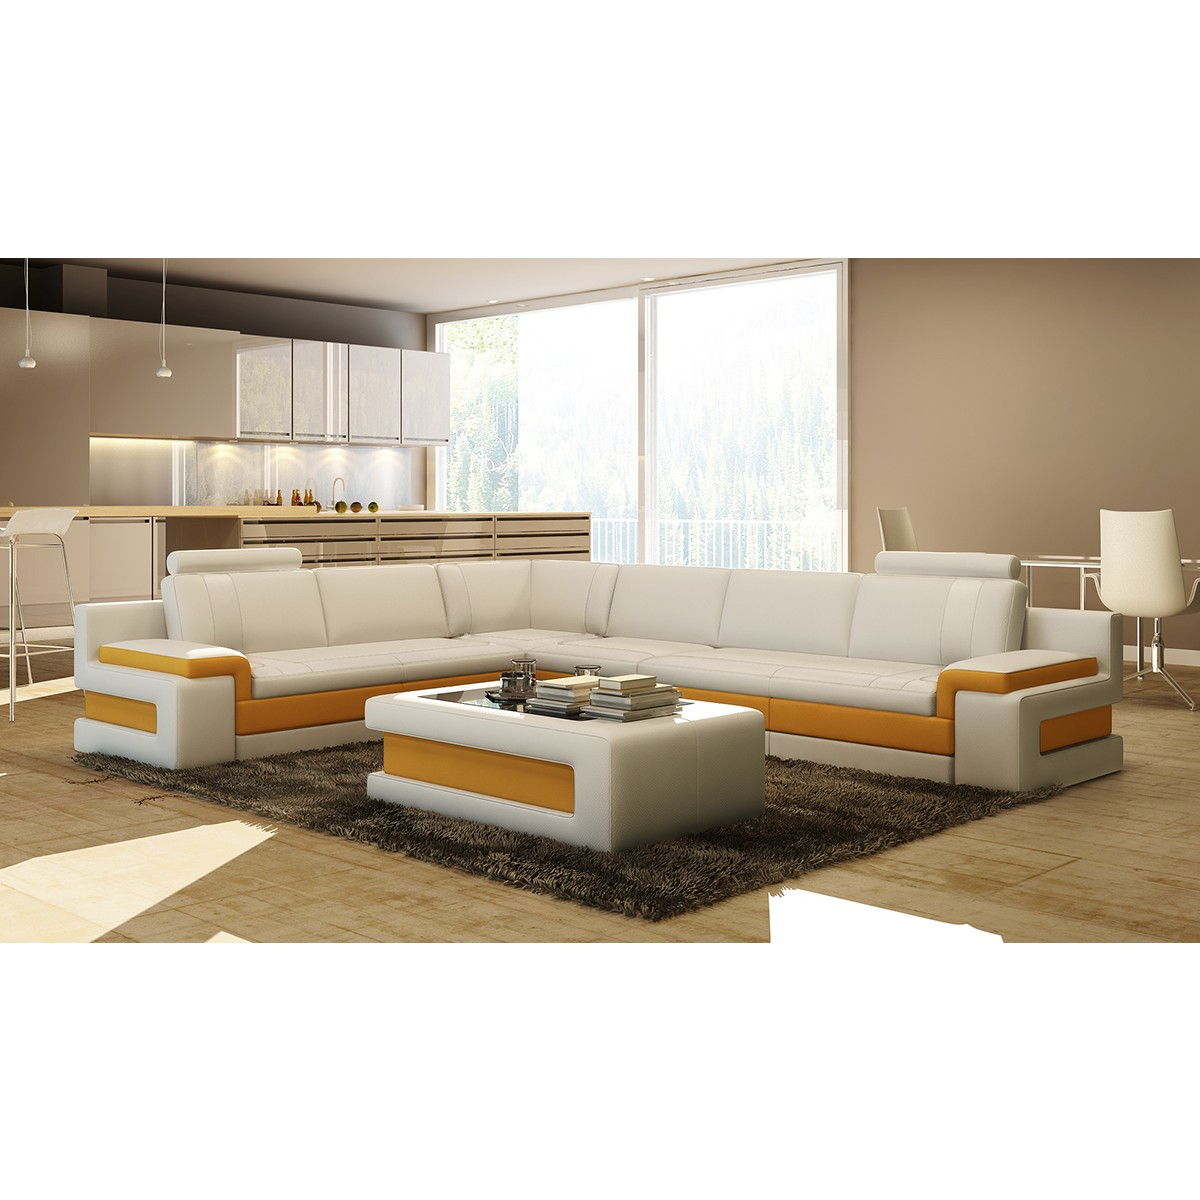 Contemporary & luxury Furniture; living room, Bedroom,LA Furniture ...